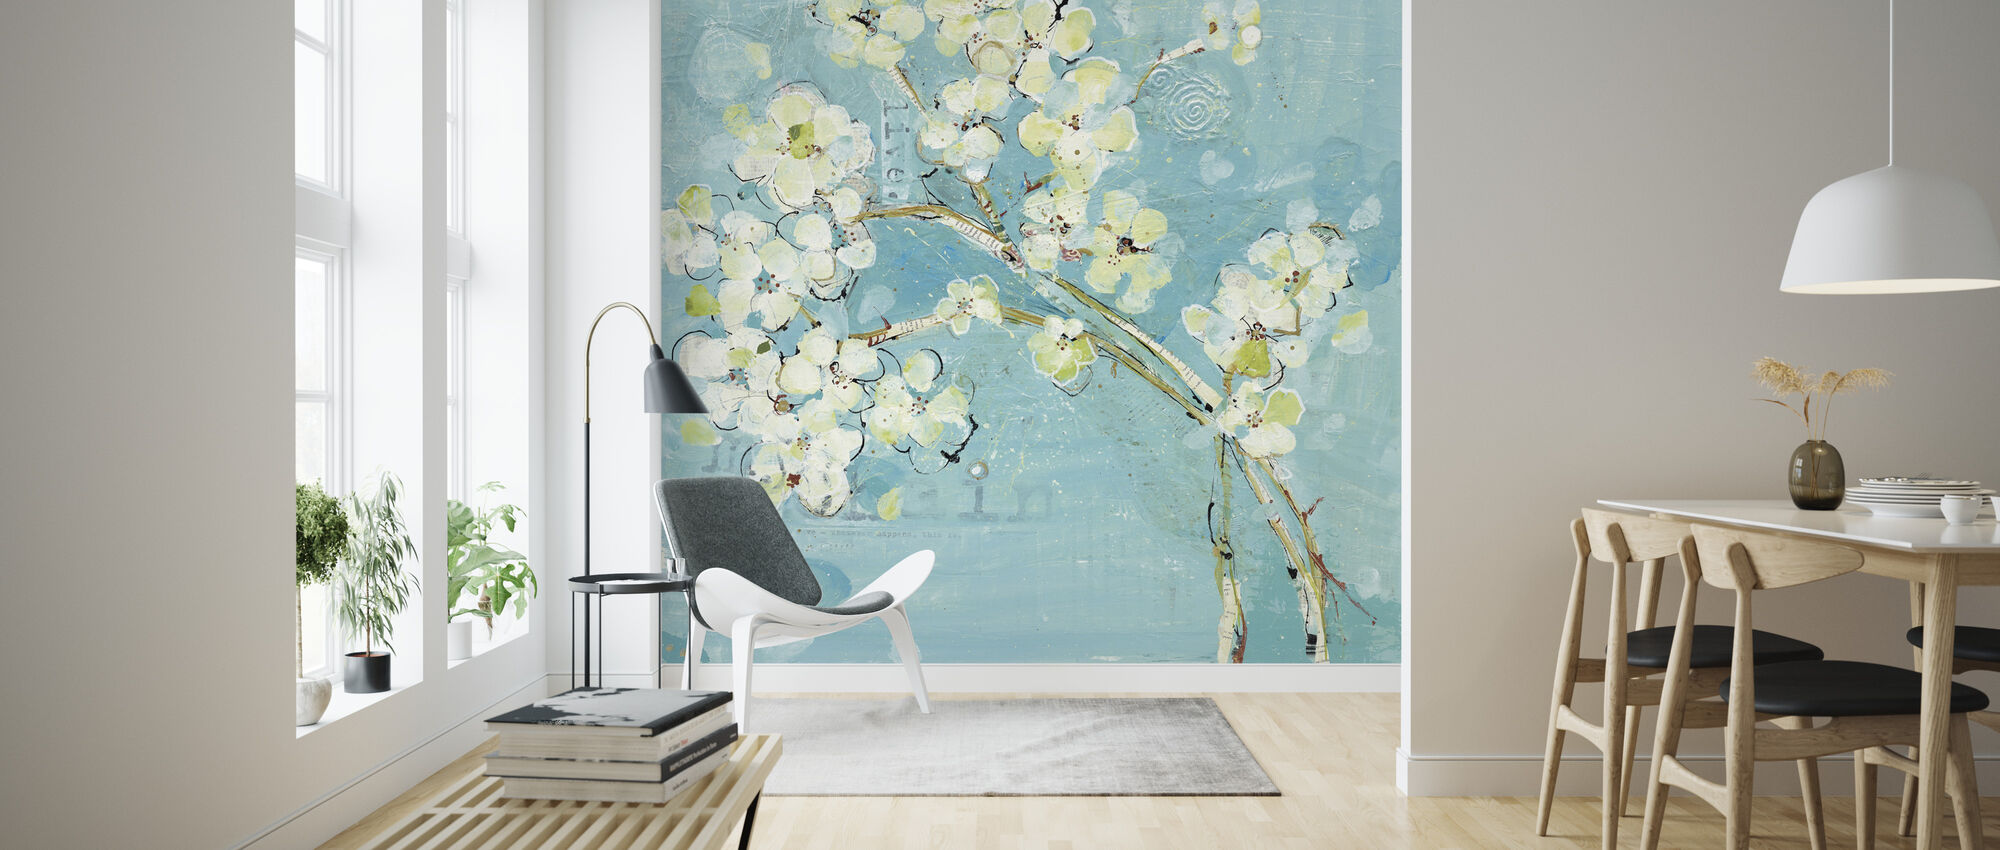 Live Turquoise - Wallpaper - Living Room